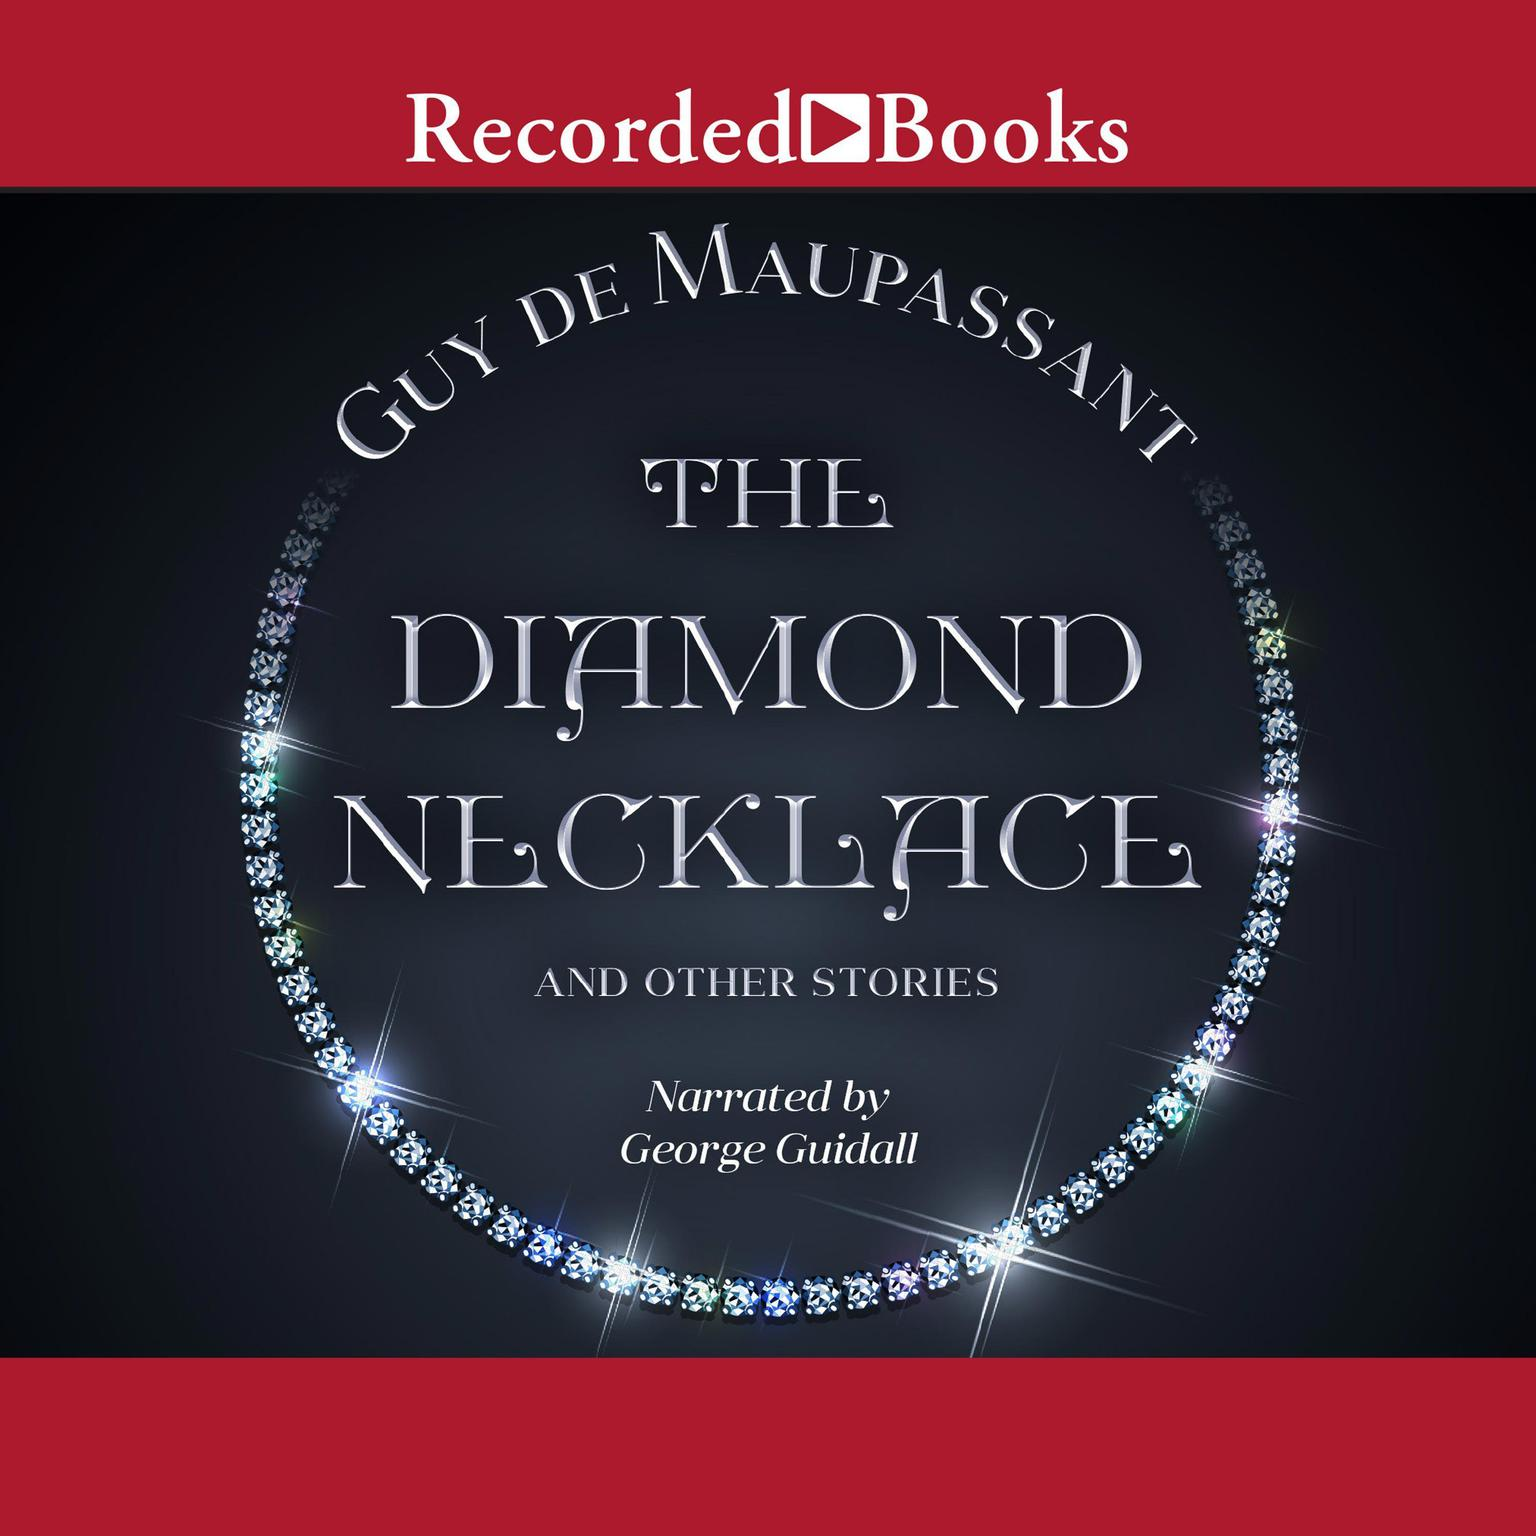 true and false values guy maupassant s story diamond neckl After mme l loses the necklace & must repay the debt, she endures 10 years of hardship only to find out the necklace is a fake mme loisel's intense desire for a different life is then equally matched by her intense suffering.